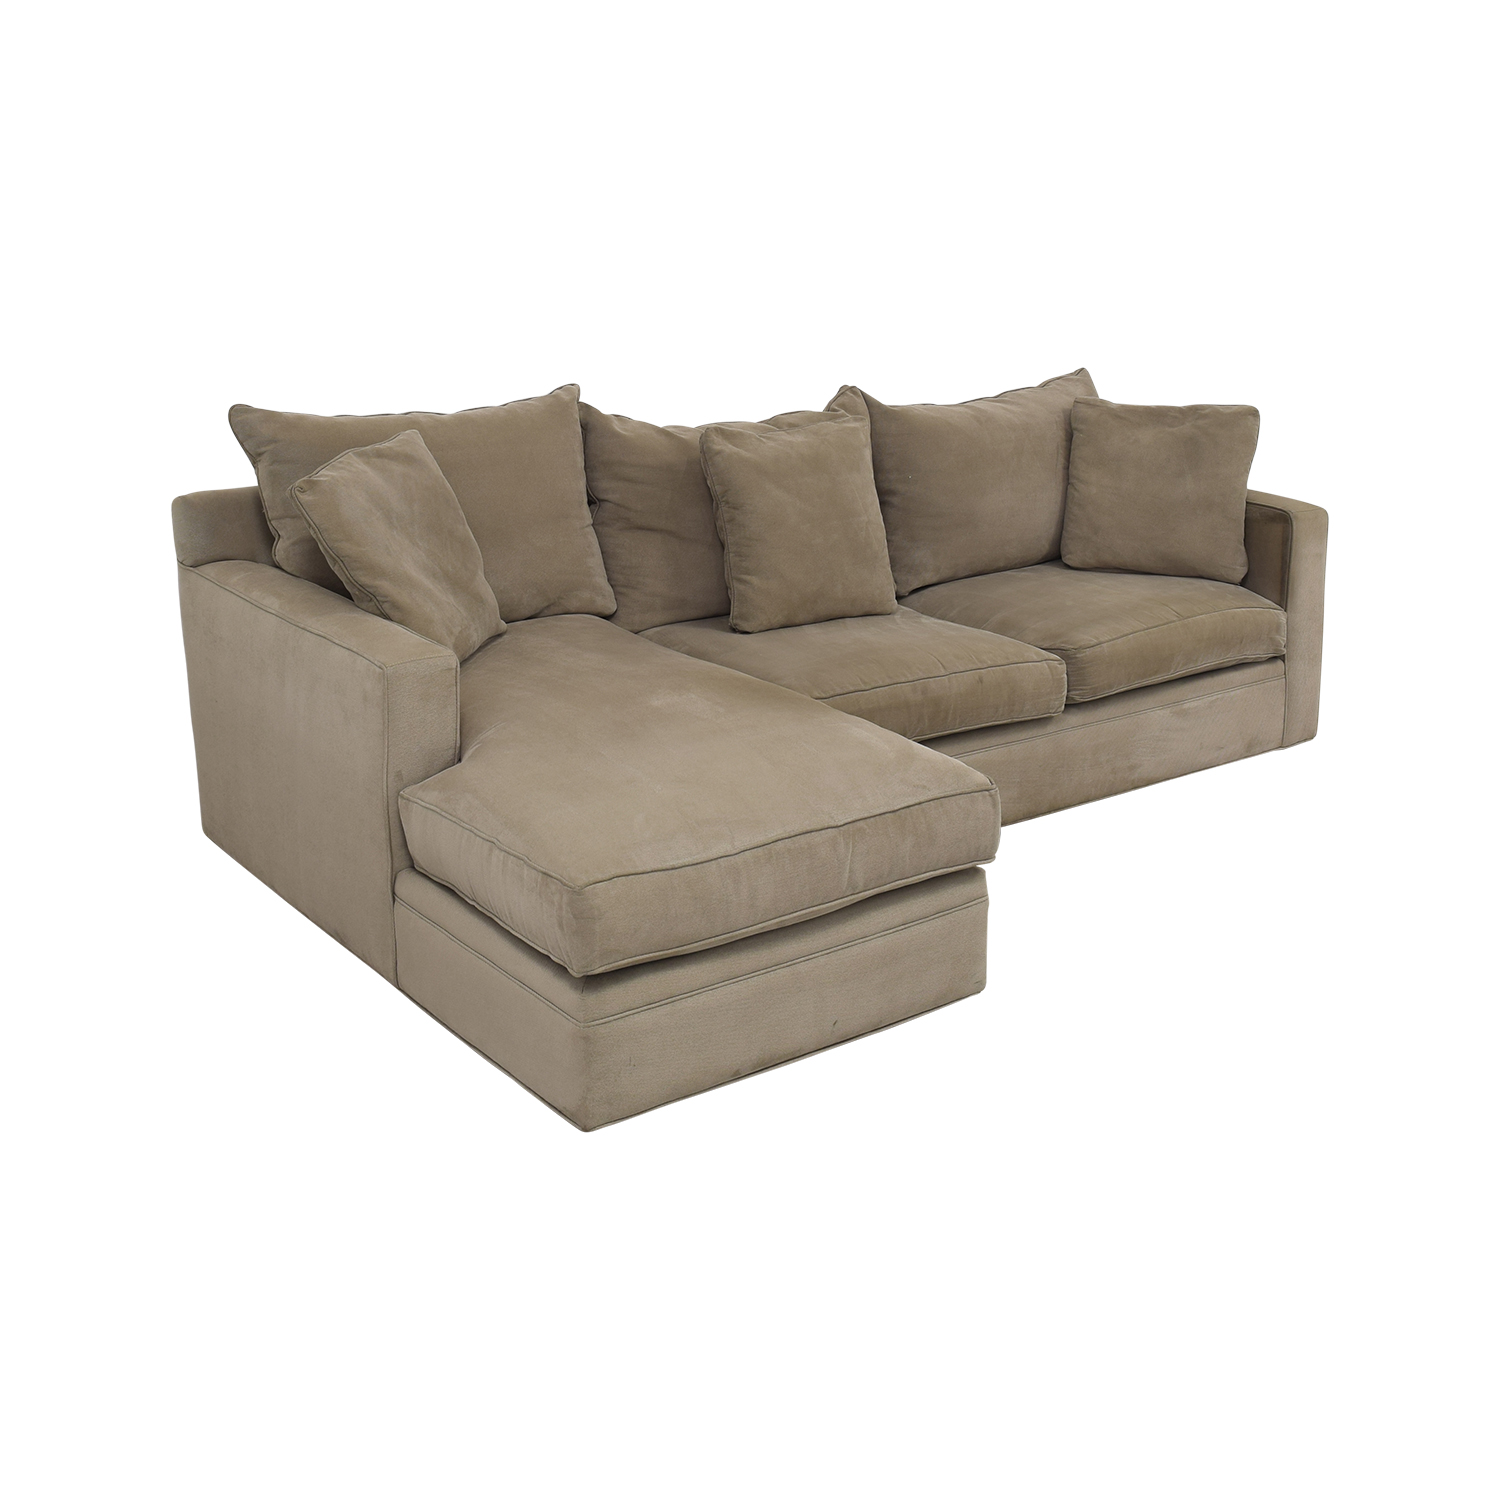 67% OFF - Room & Board Room & Board Orson Chaise Sectional Sofa / Sofas